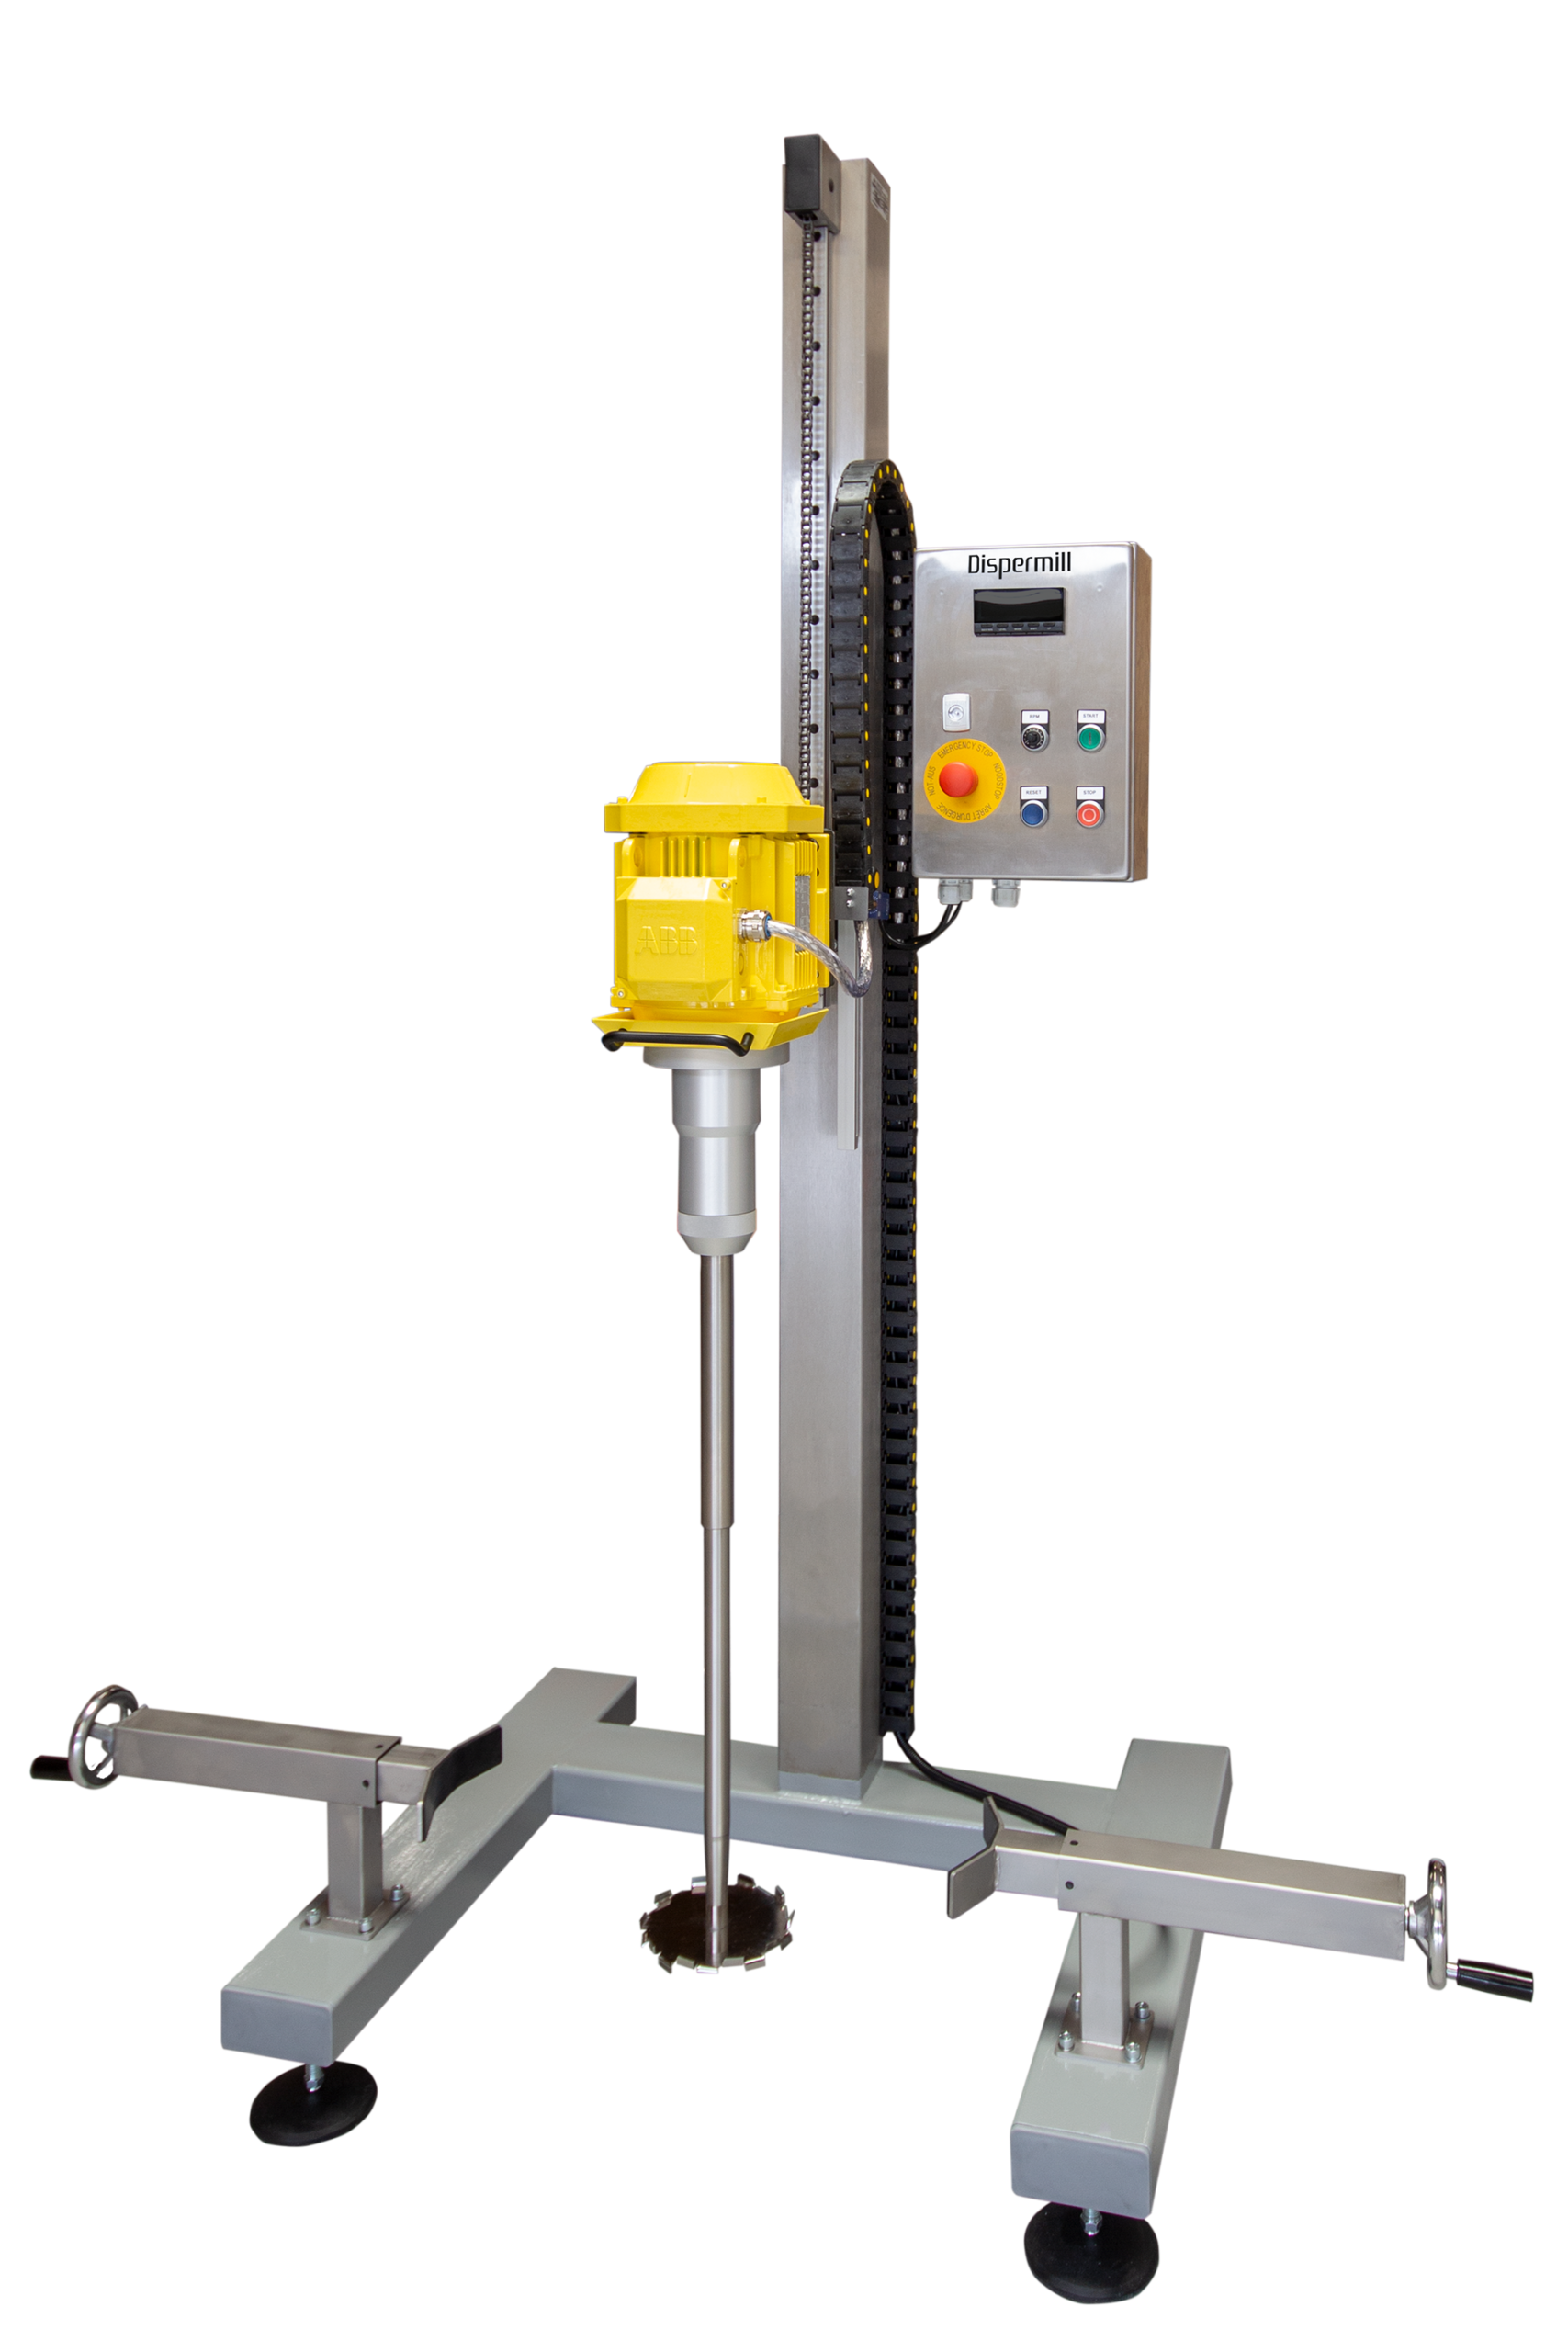 Button for more information pilot plant dispersers